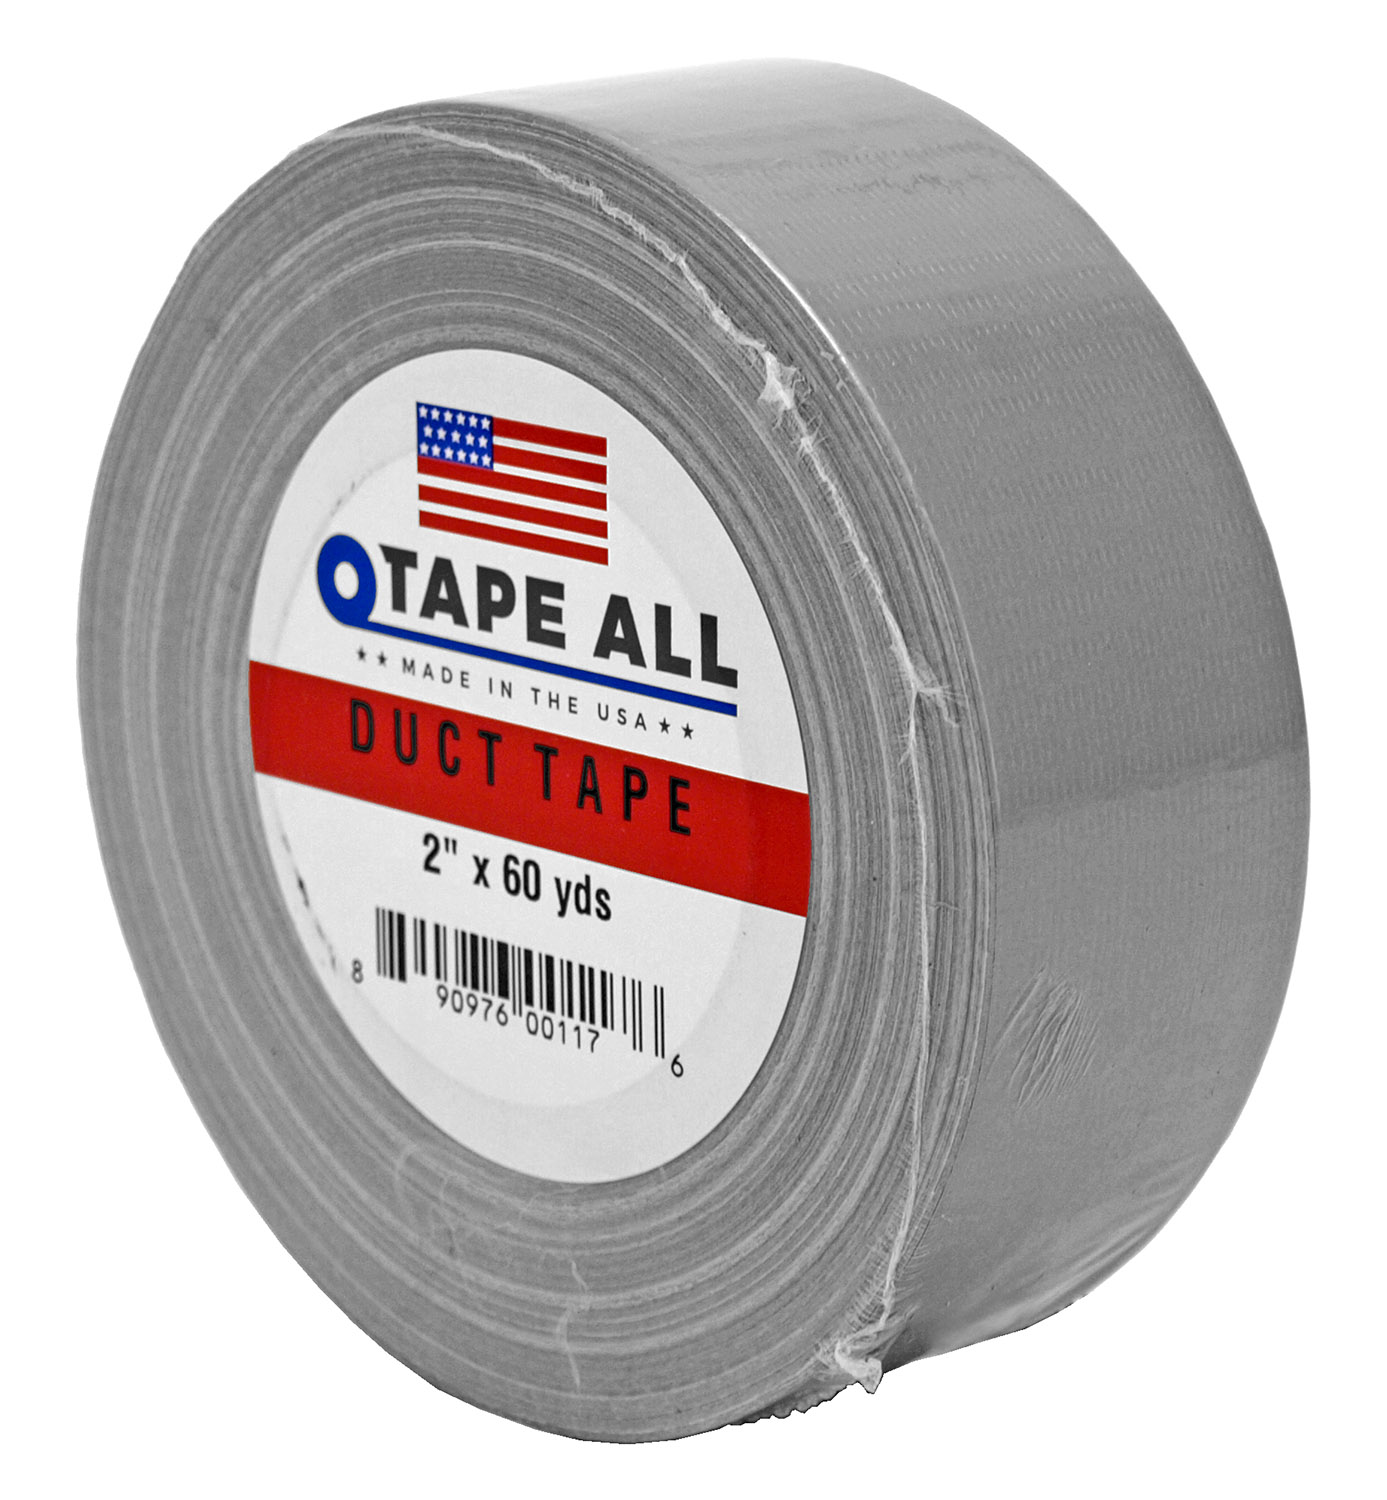 2 in x 60 yds Duct Tape